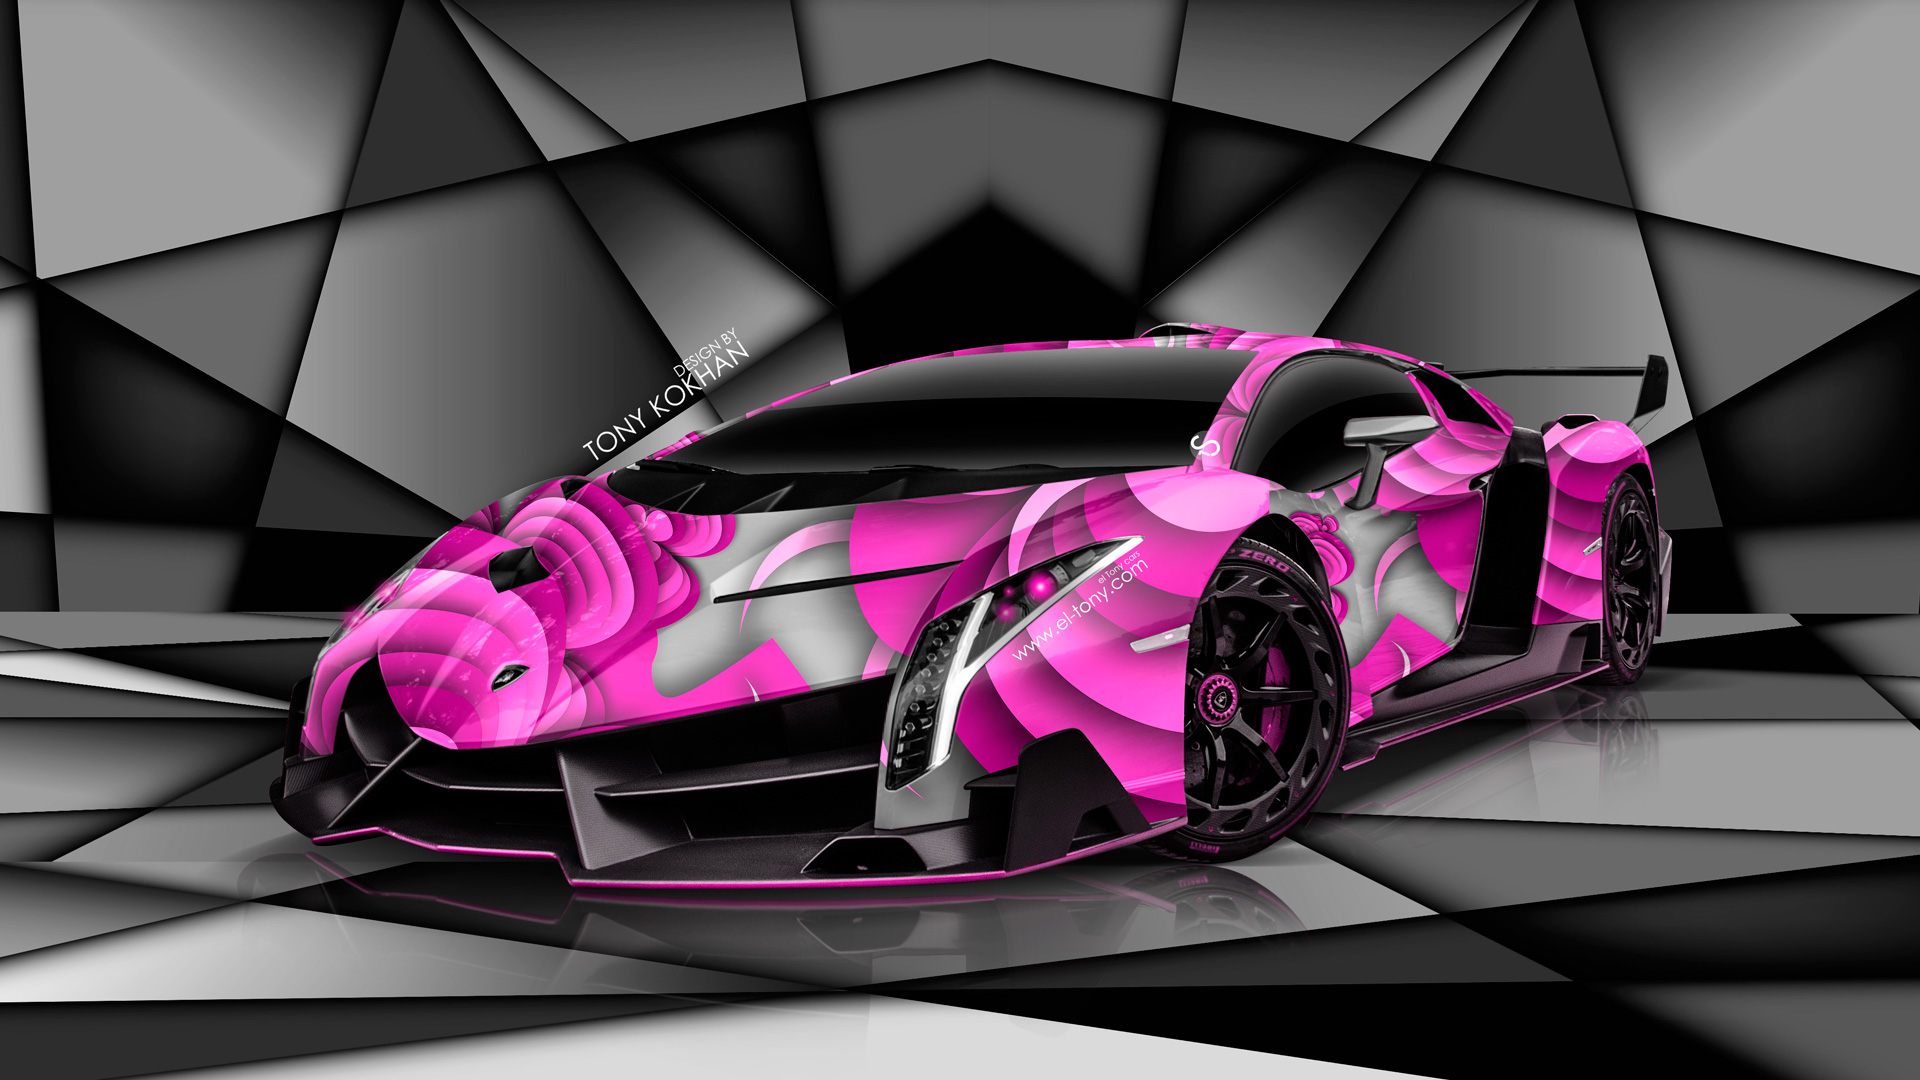 Lamborghini Veneno Super Aerography Car 2014 | el Tony